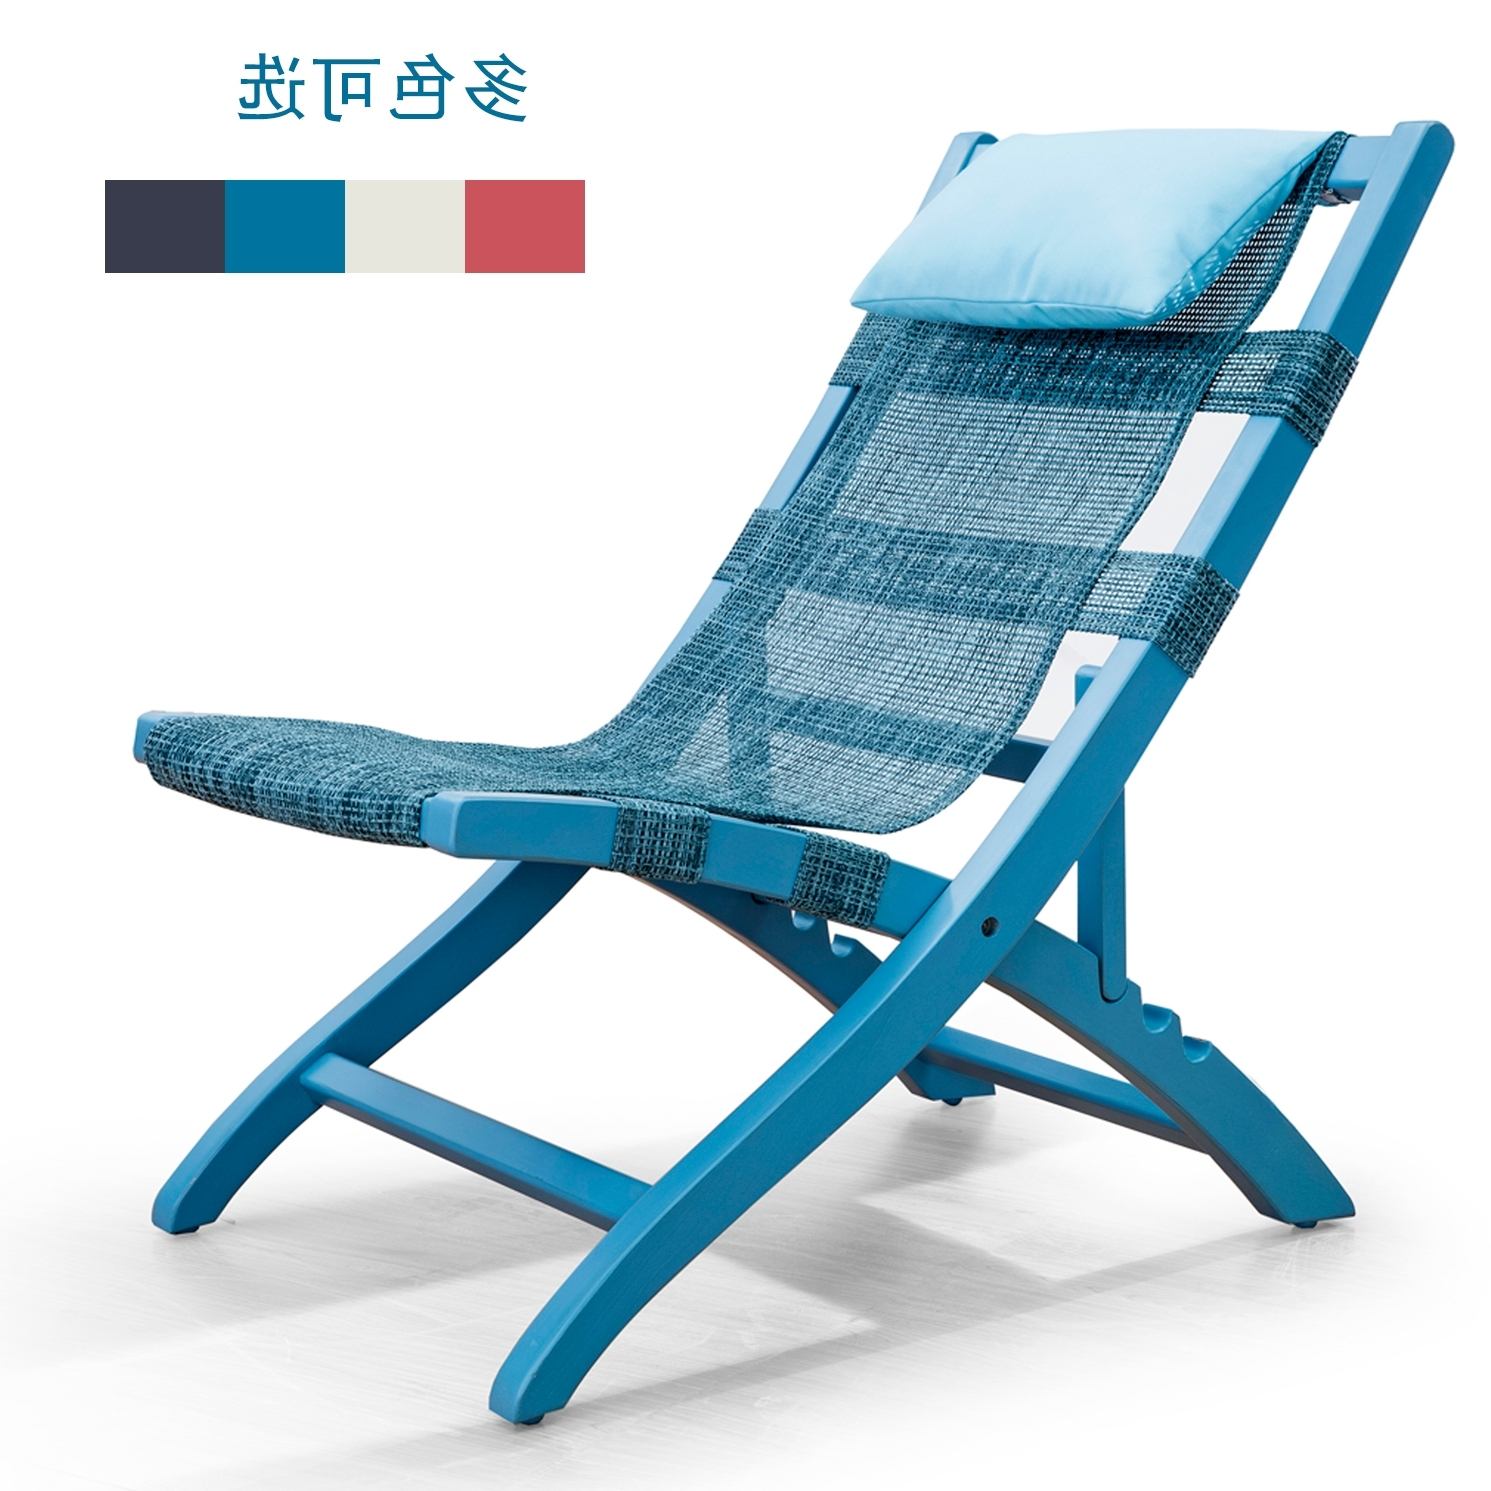 Uncategorized : Folding Chaise Lounge Chair With Trendy Chaise Pertaining To Well Known Maureen Outdoor Folding Chaise Lounge Chairs (View 13 of 15)